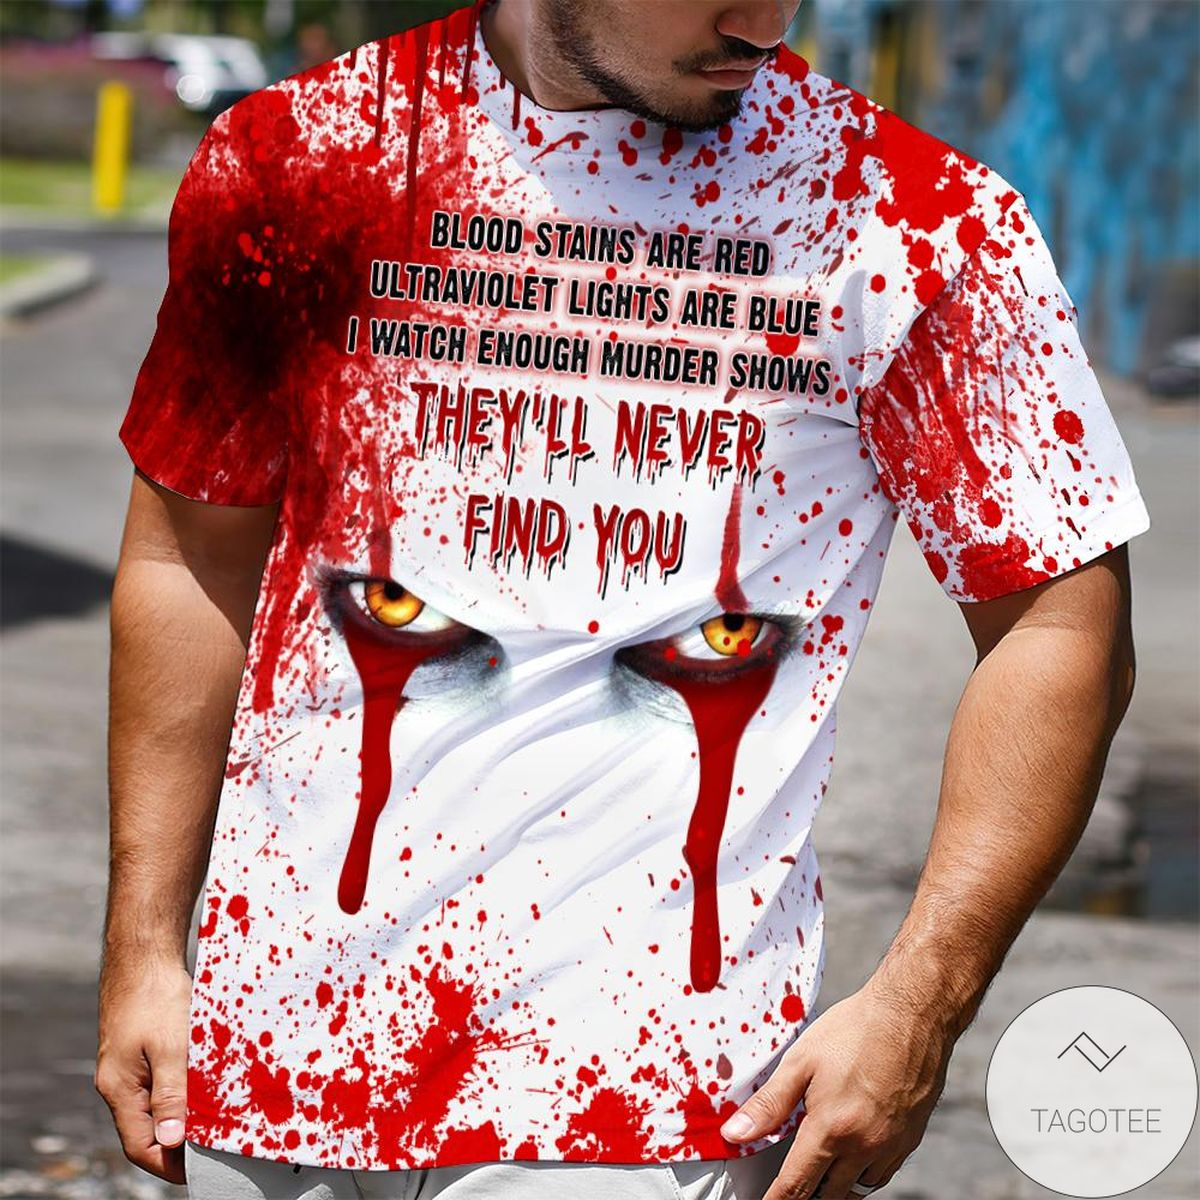 Blood Stains Are Red Ultraviolet Lights Are Blue They'll Never Find You Pennywise Shirt